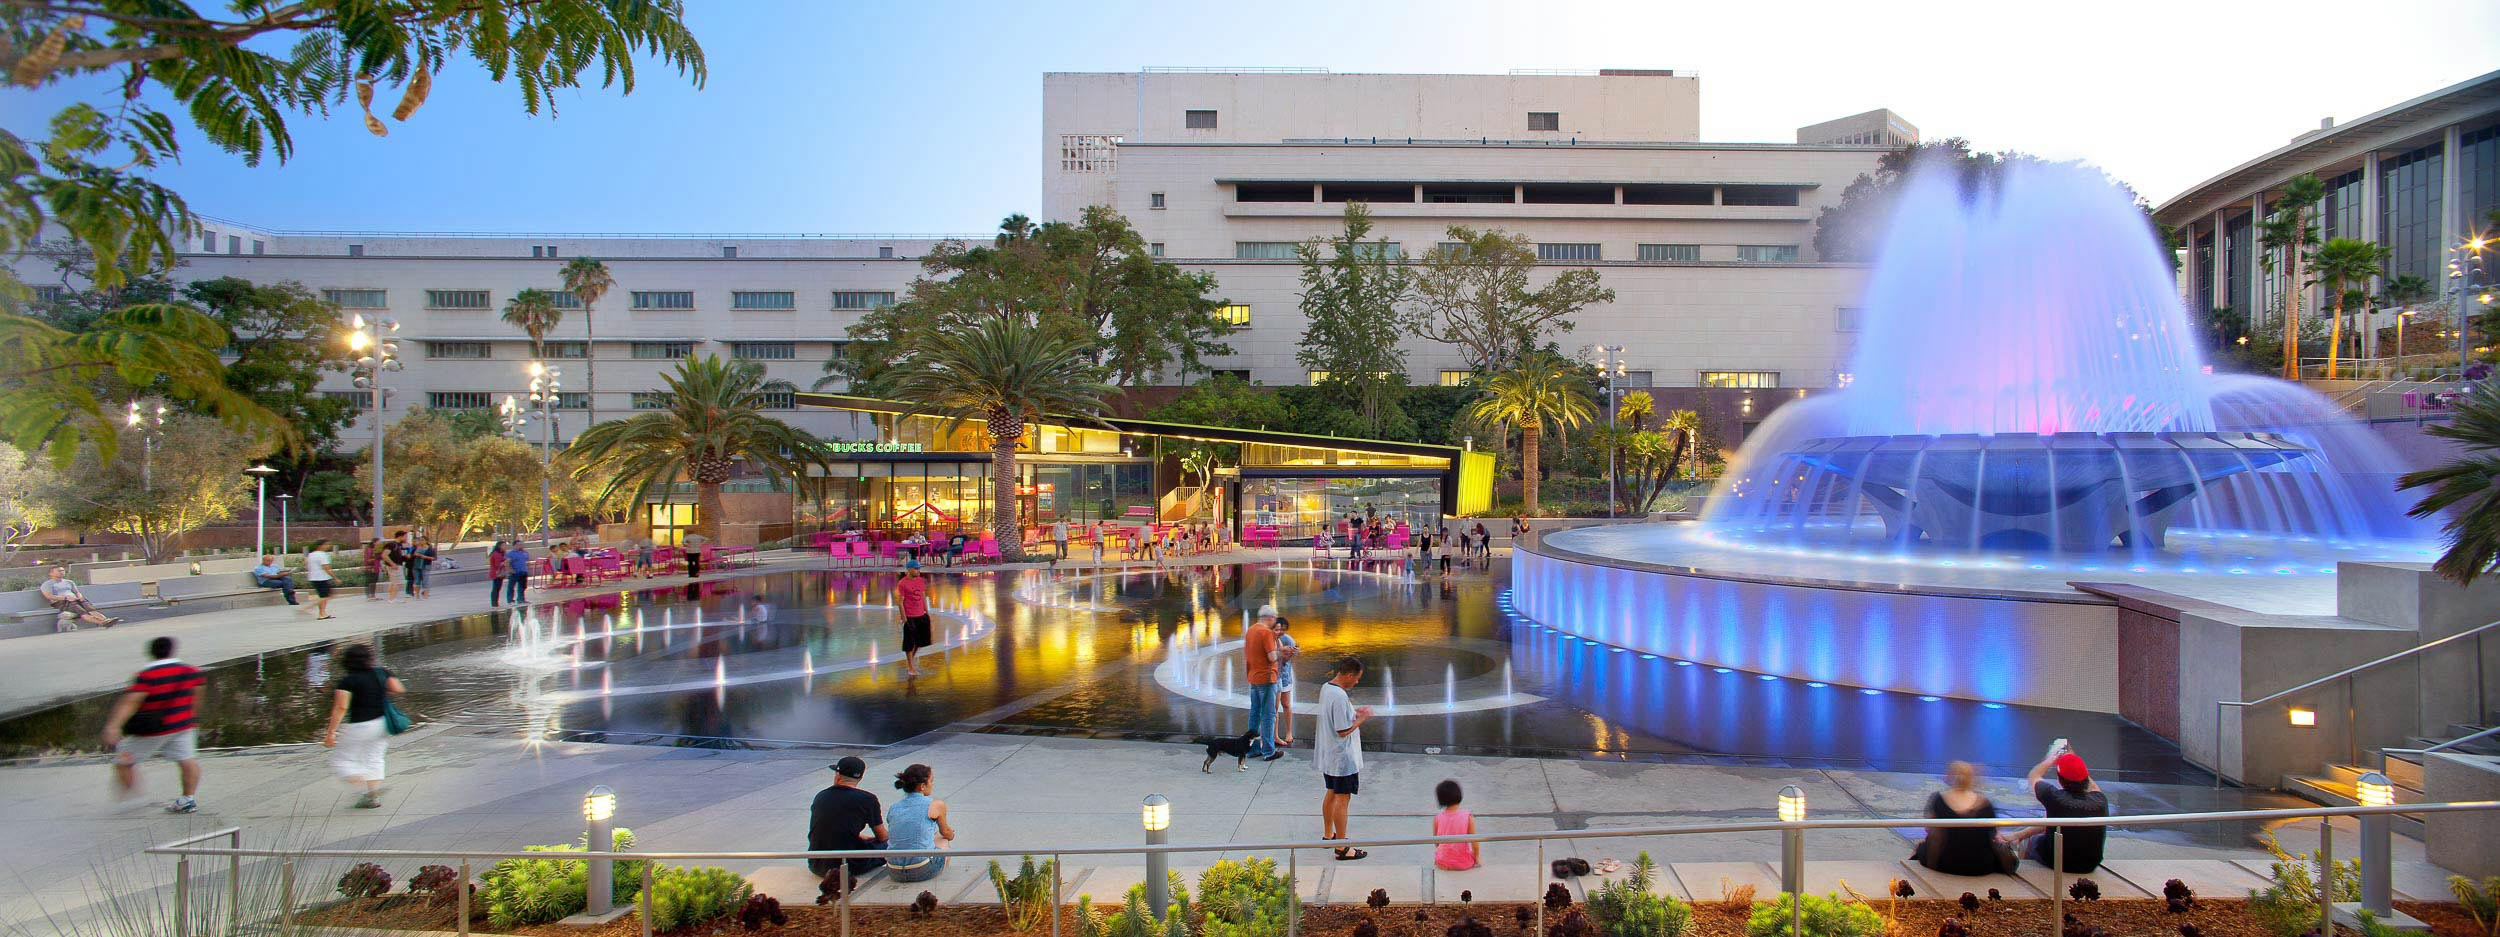 glowing park fountain with smaller water features on the ground beside it, and pink tables and seats in the background